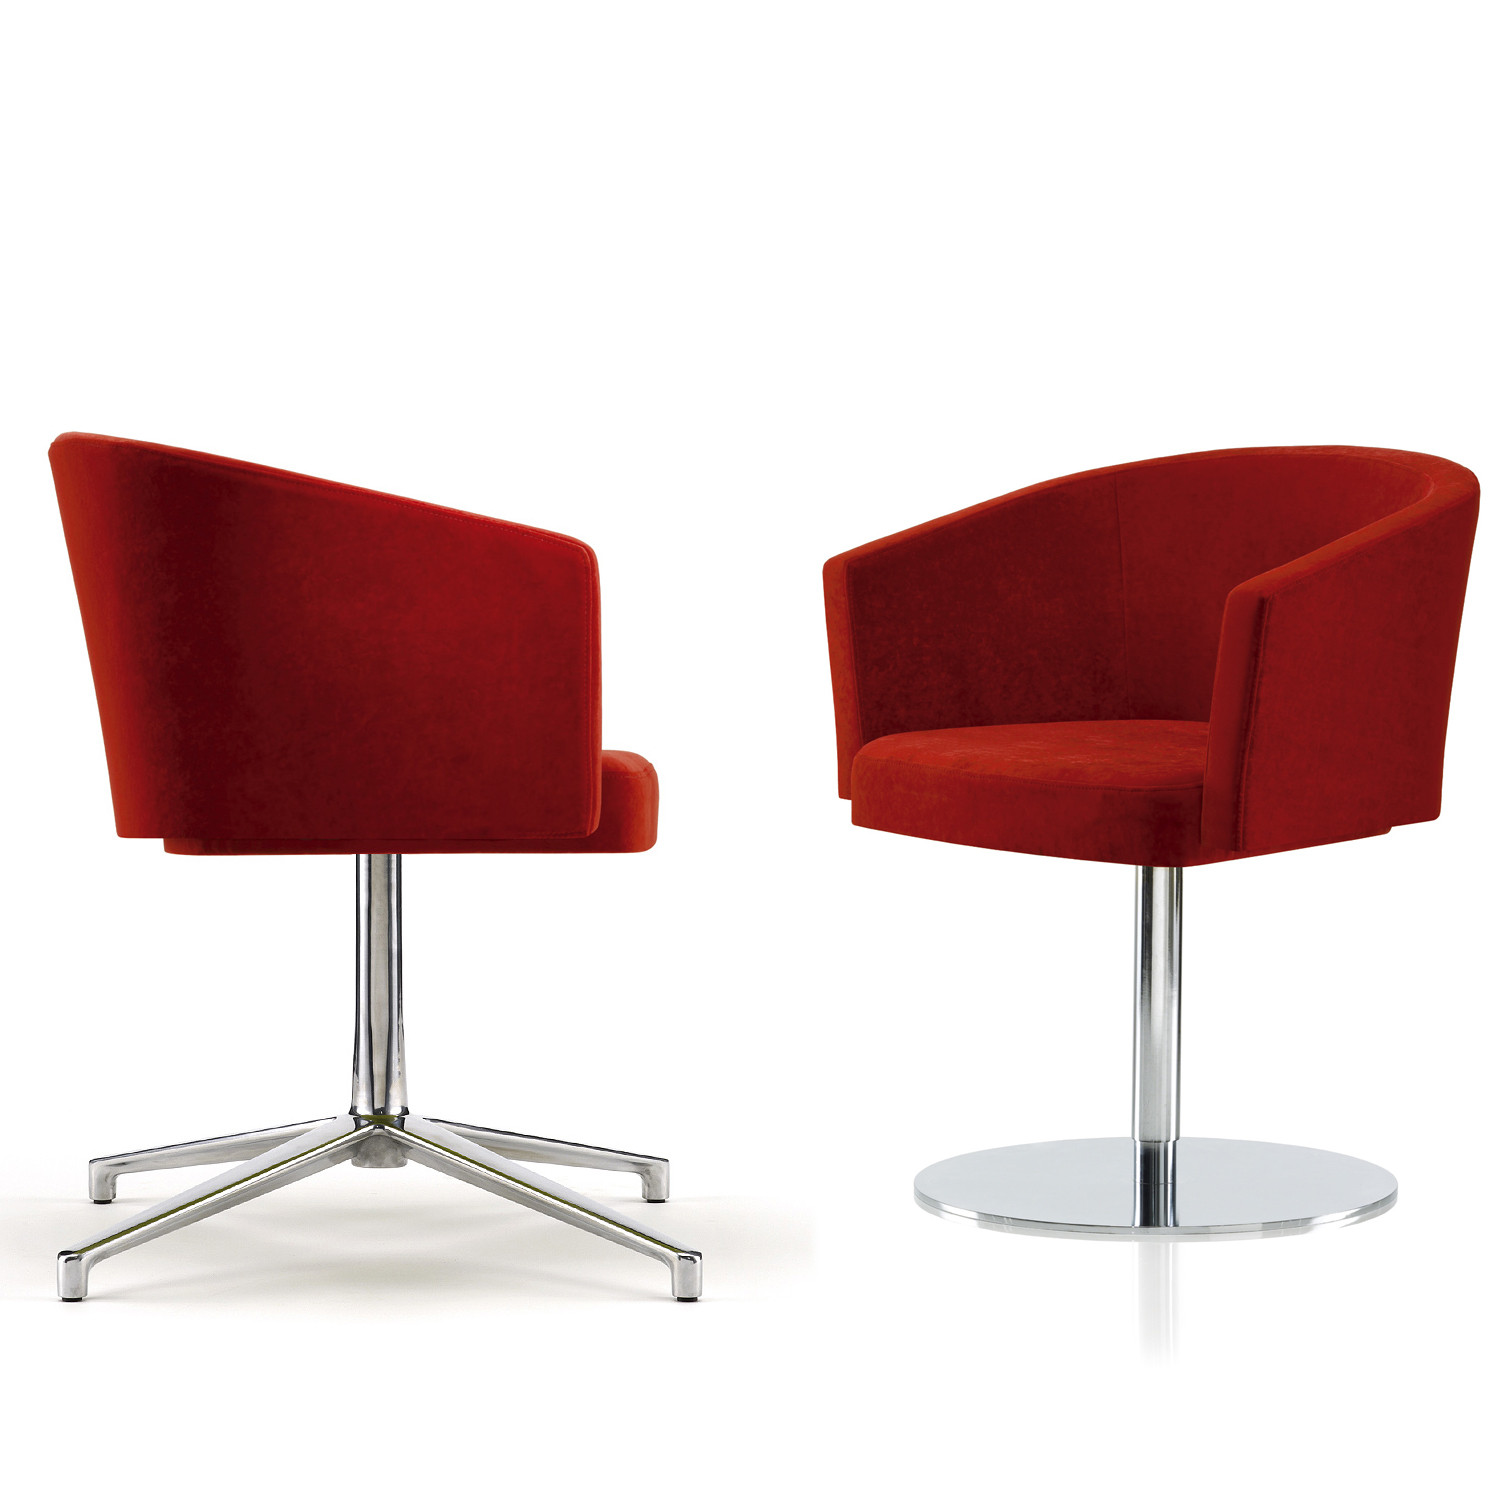 Zone Chairs by Pledge